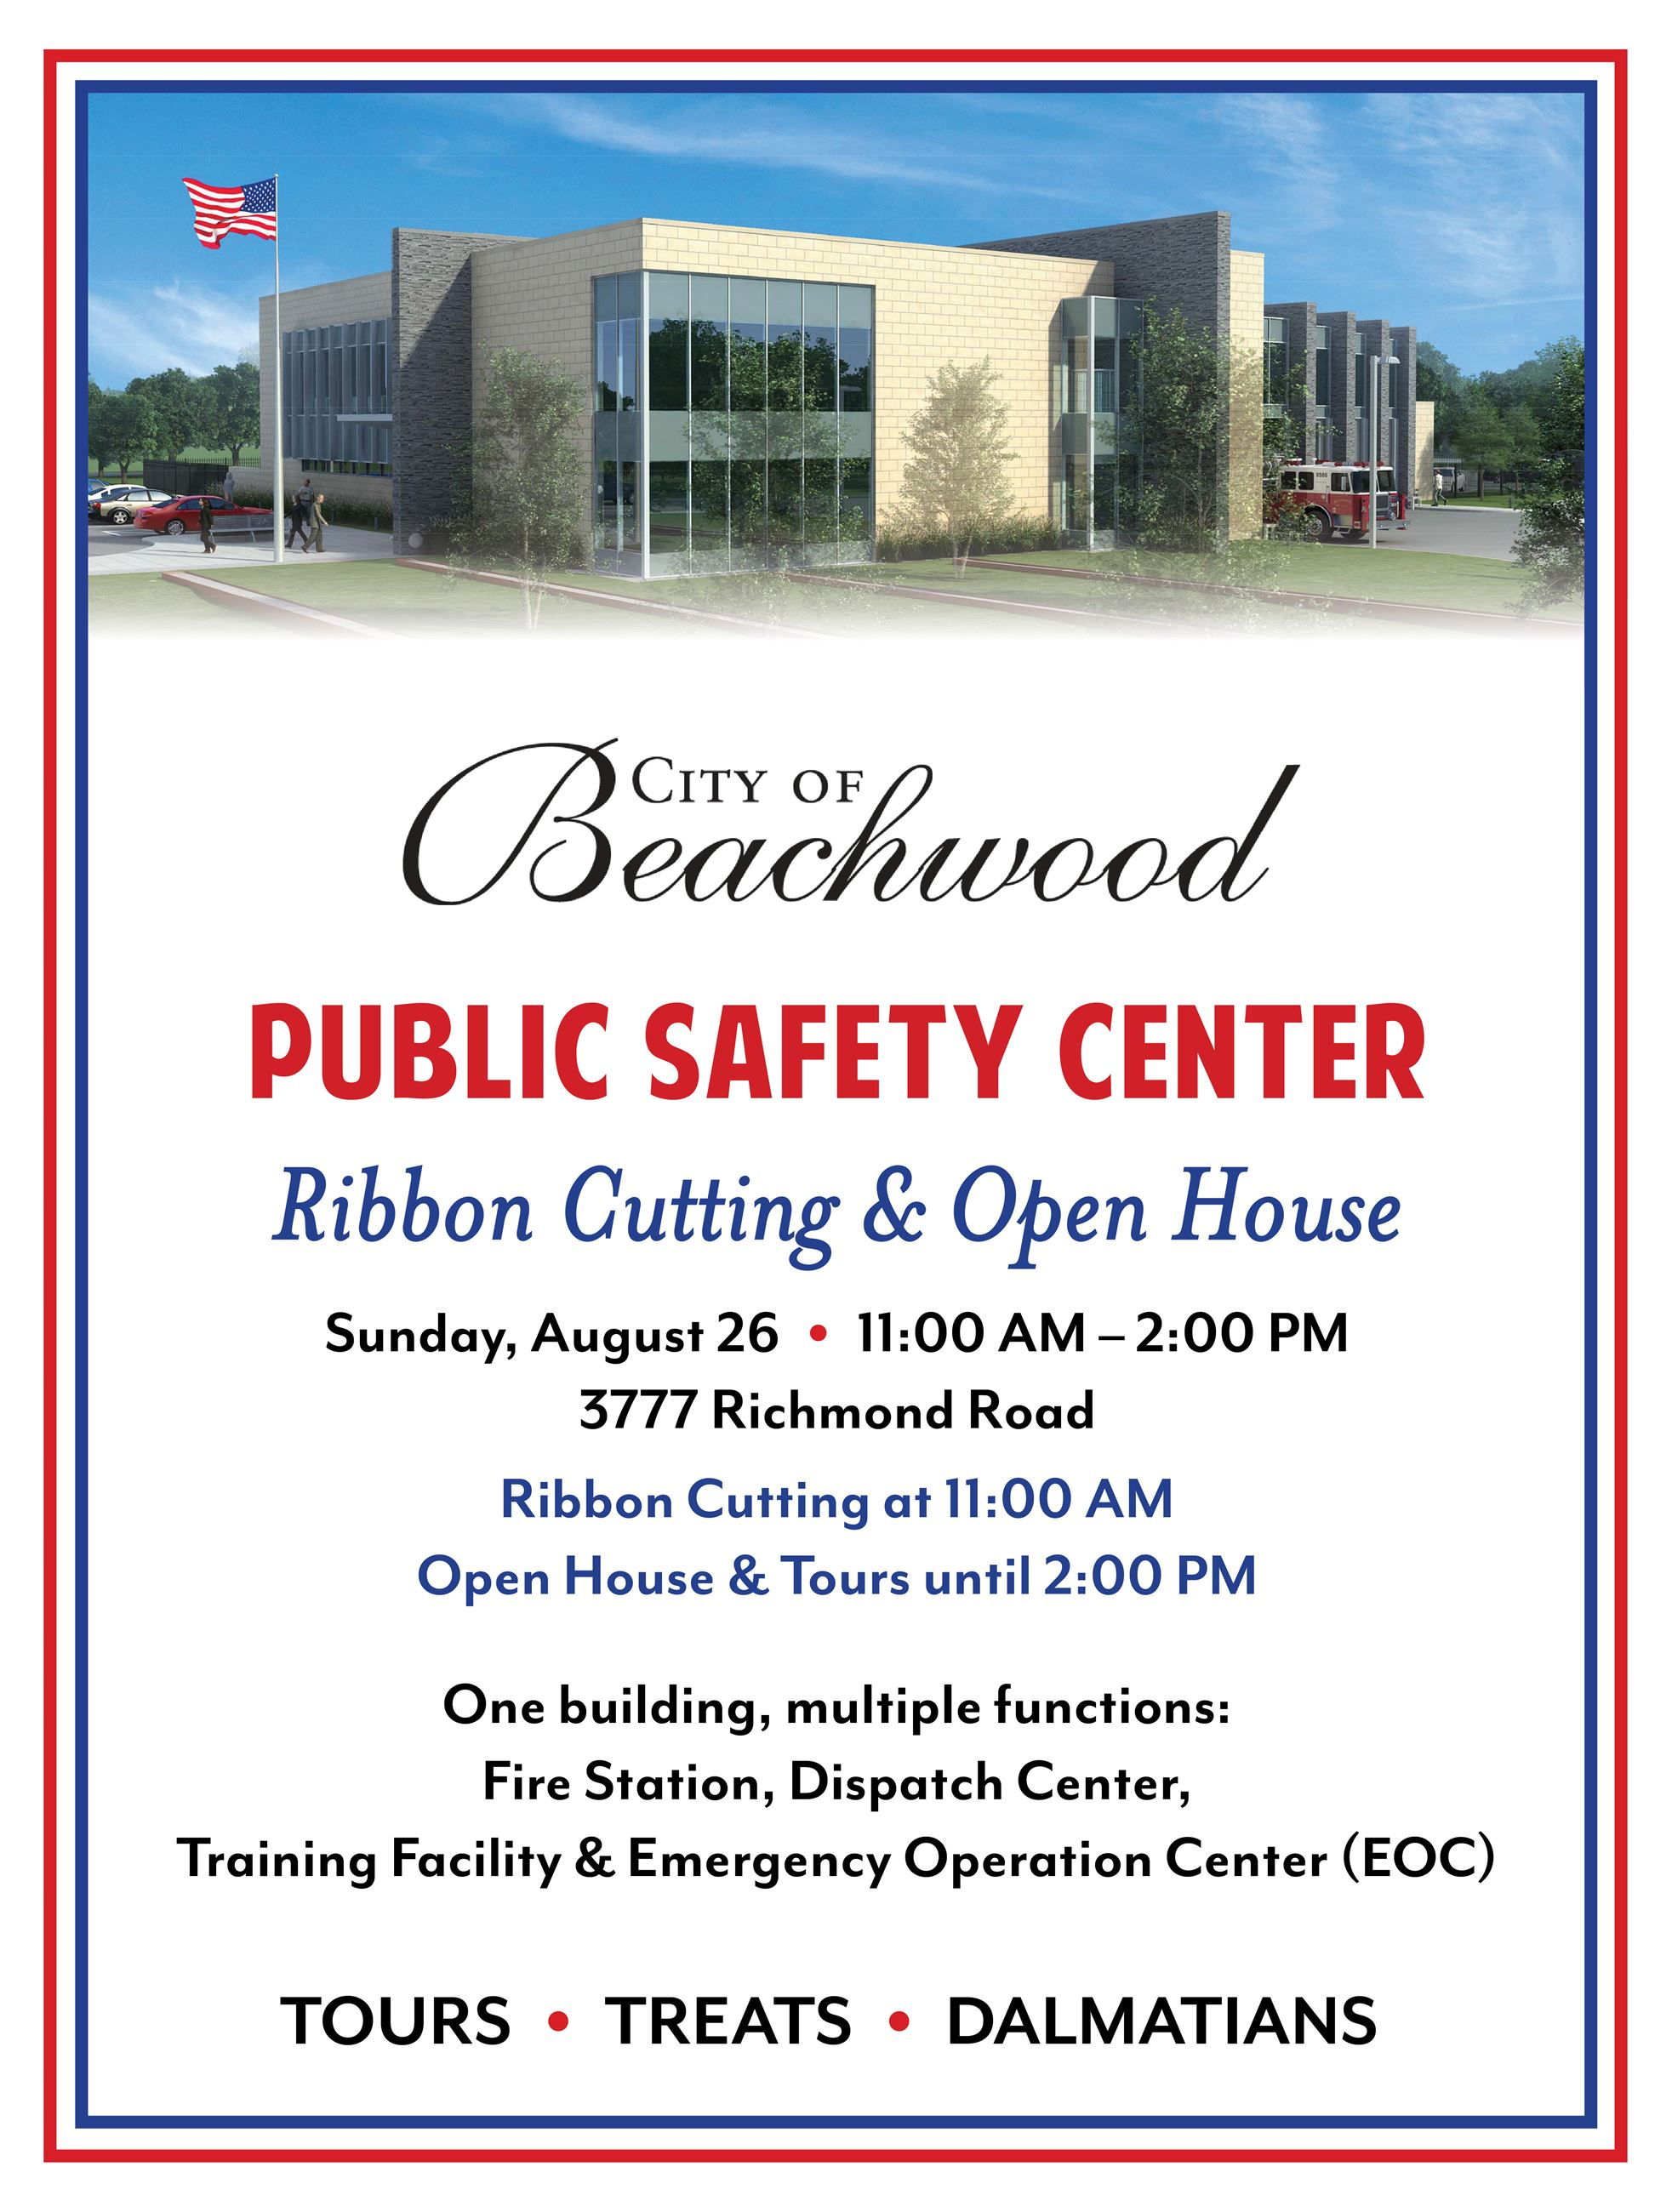 Public Safety Center Invitation 2018